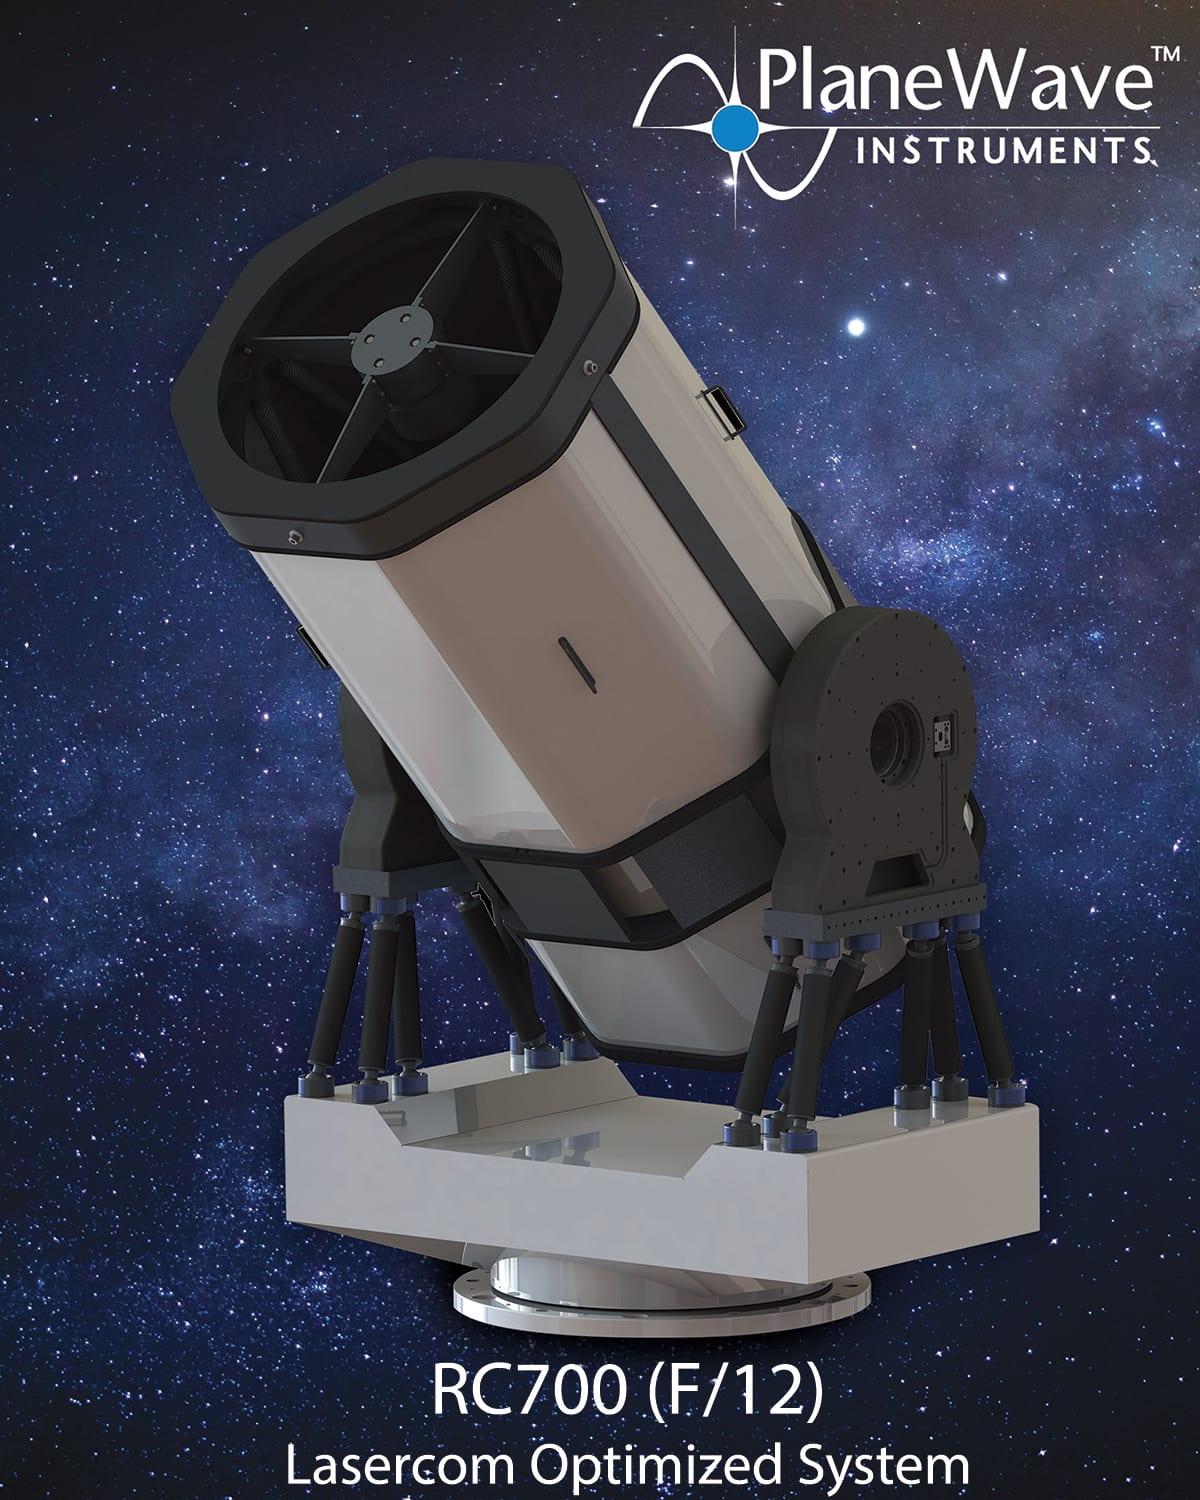 Australian National University awards PlaneWave Instruments a contract to build an optical ground station with their RC700 Post Thumbnail